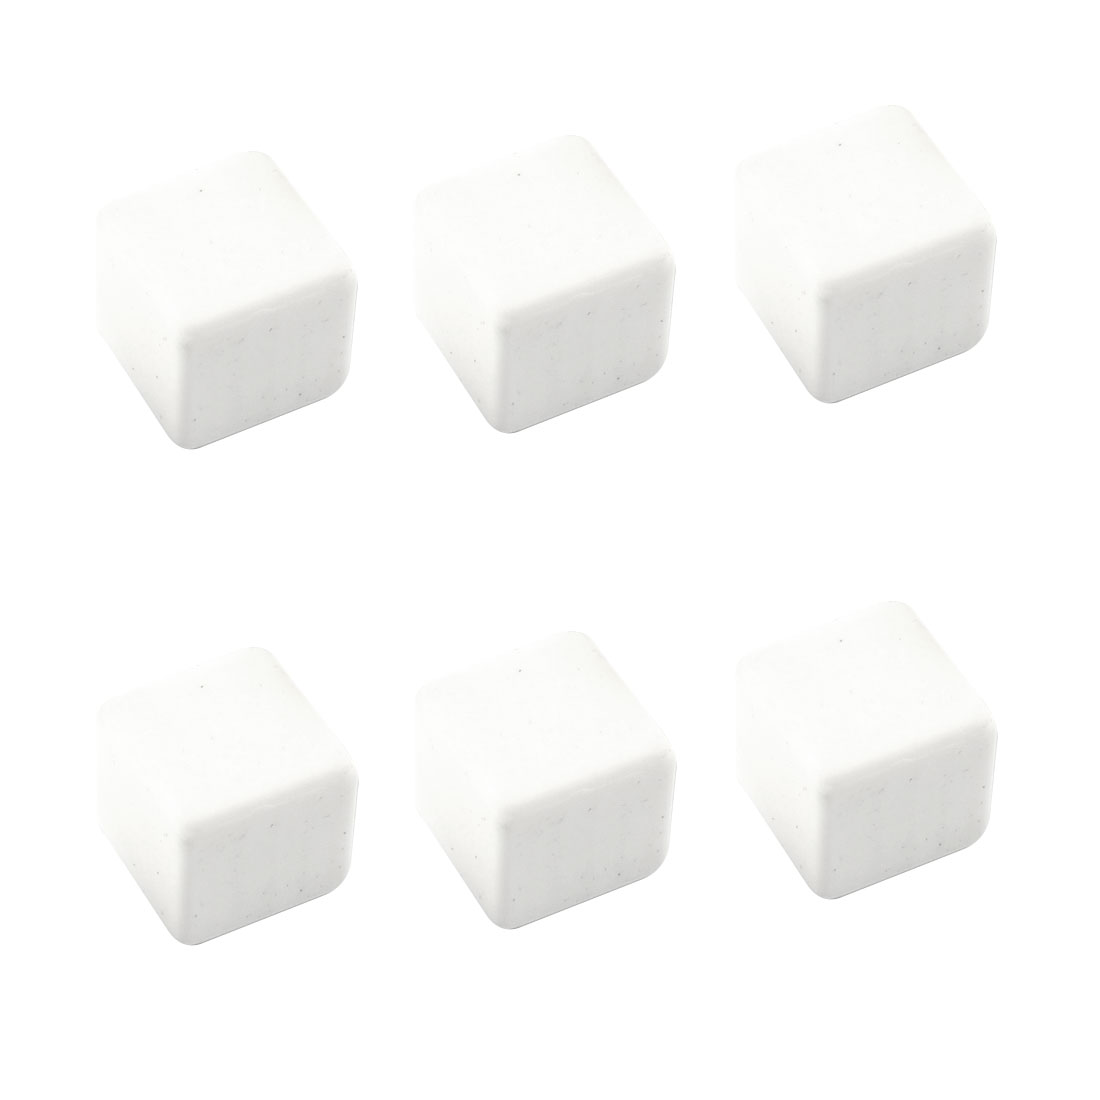 6 in 1 White Ceramic Ice Cube Whisky Scotch Chilling Stones w Drawstring Pouch